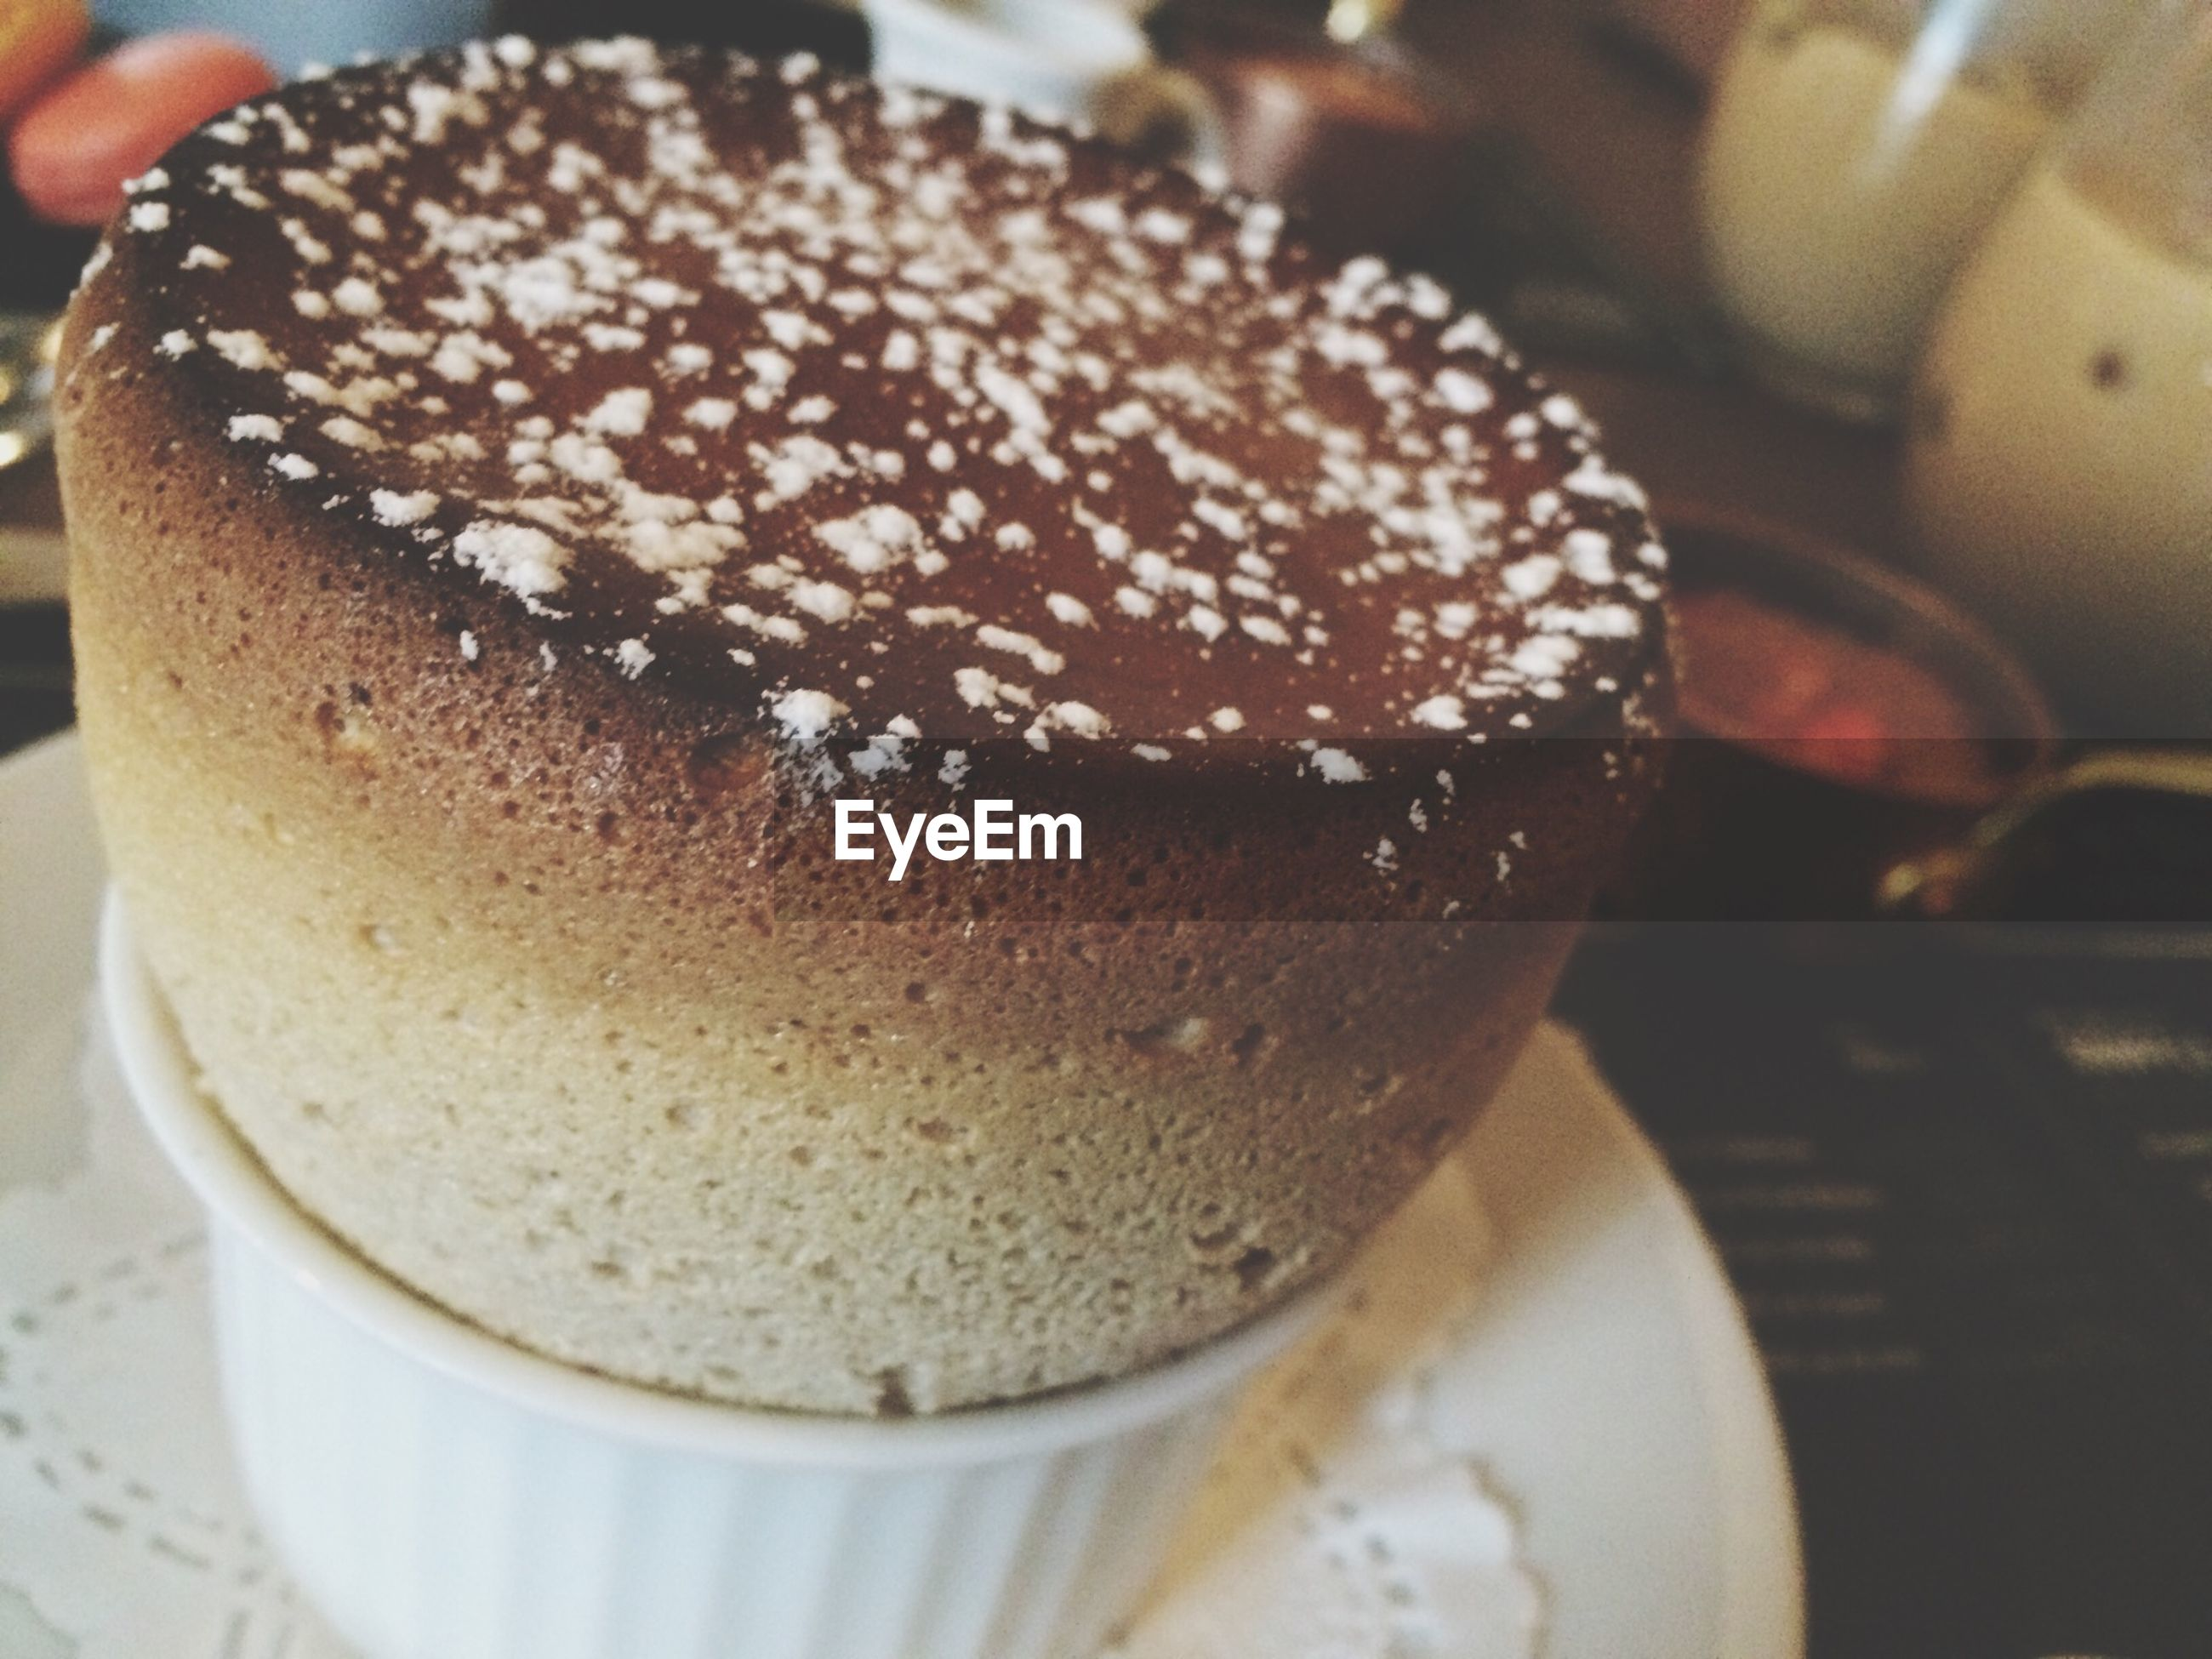 food and drink, freshness, drink, indoors, refreshment, close-up, coffee cup, sweet food, still life, dessert, coffee - drink, table, frothy drink, indulgence, cake, focus on foreground, food, unhealthy eating, saucer, selective focus